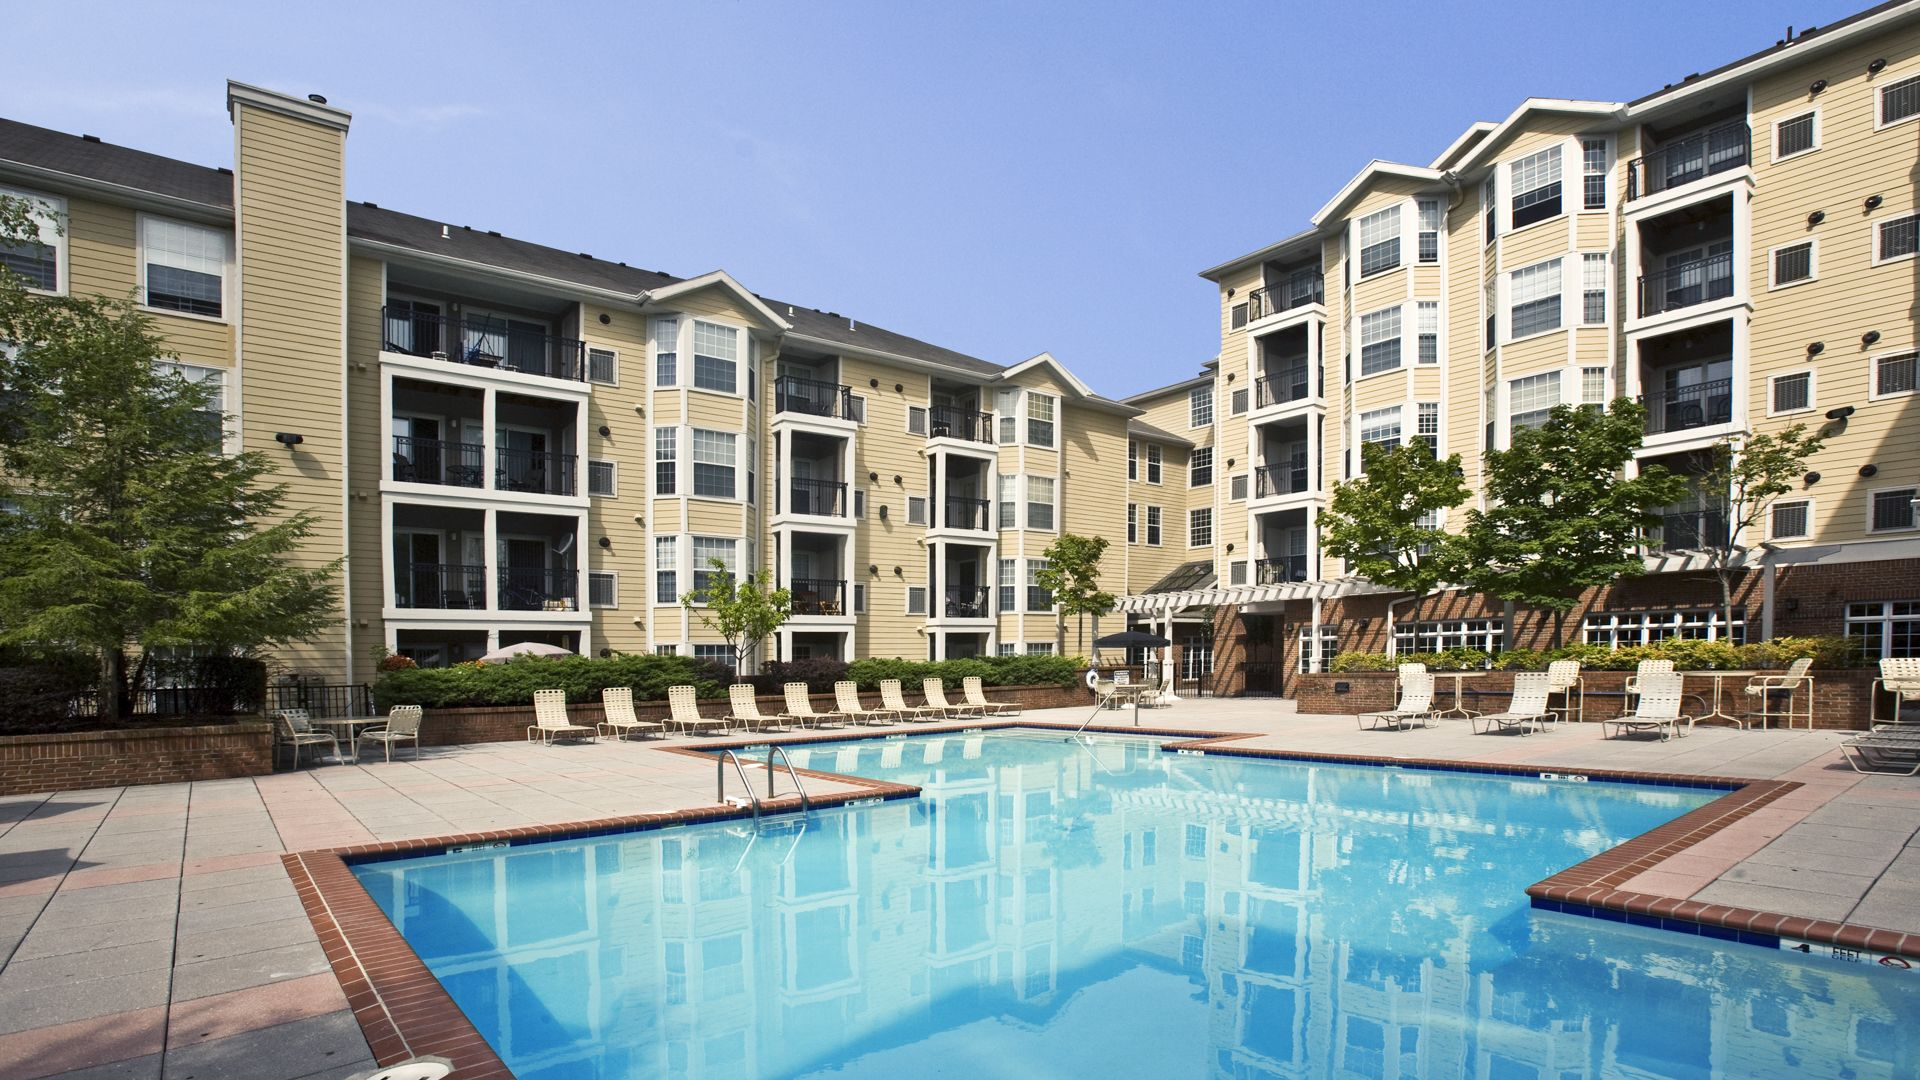 Fairfield Apartments - Pool